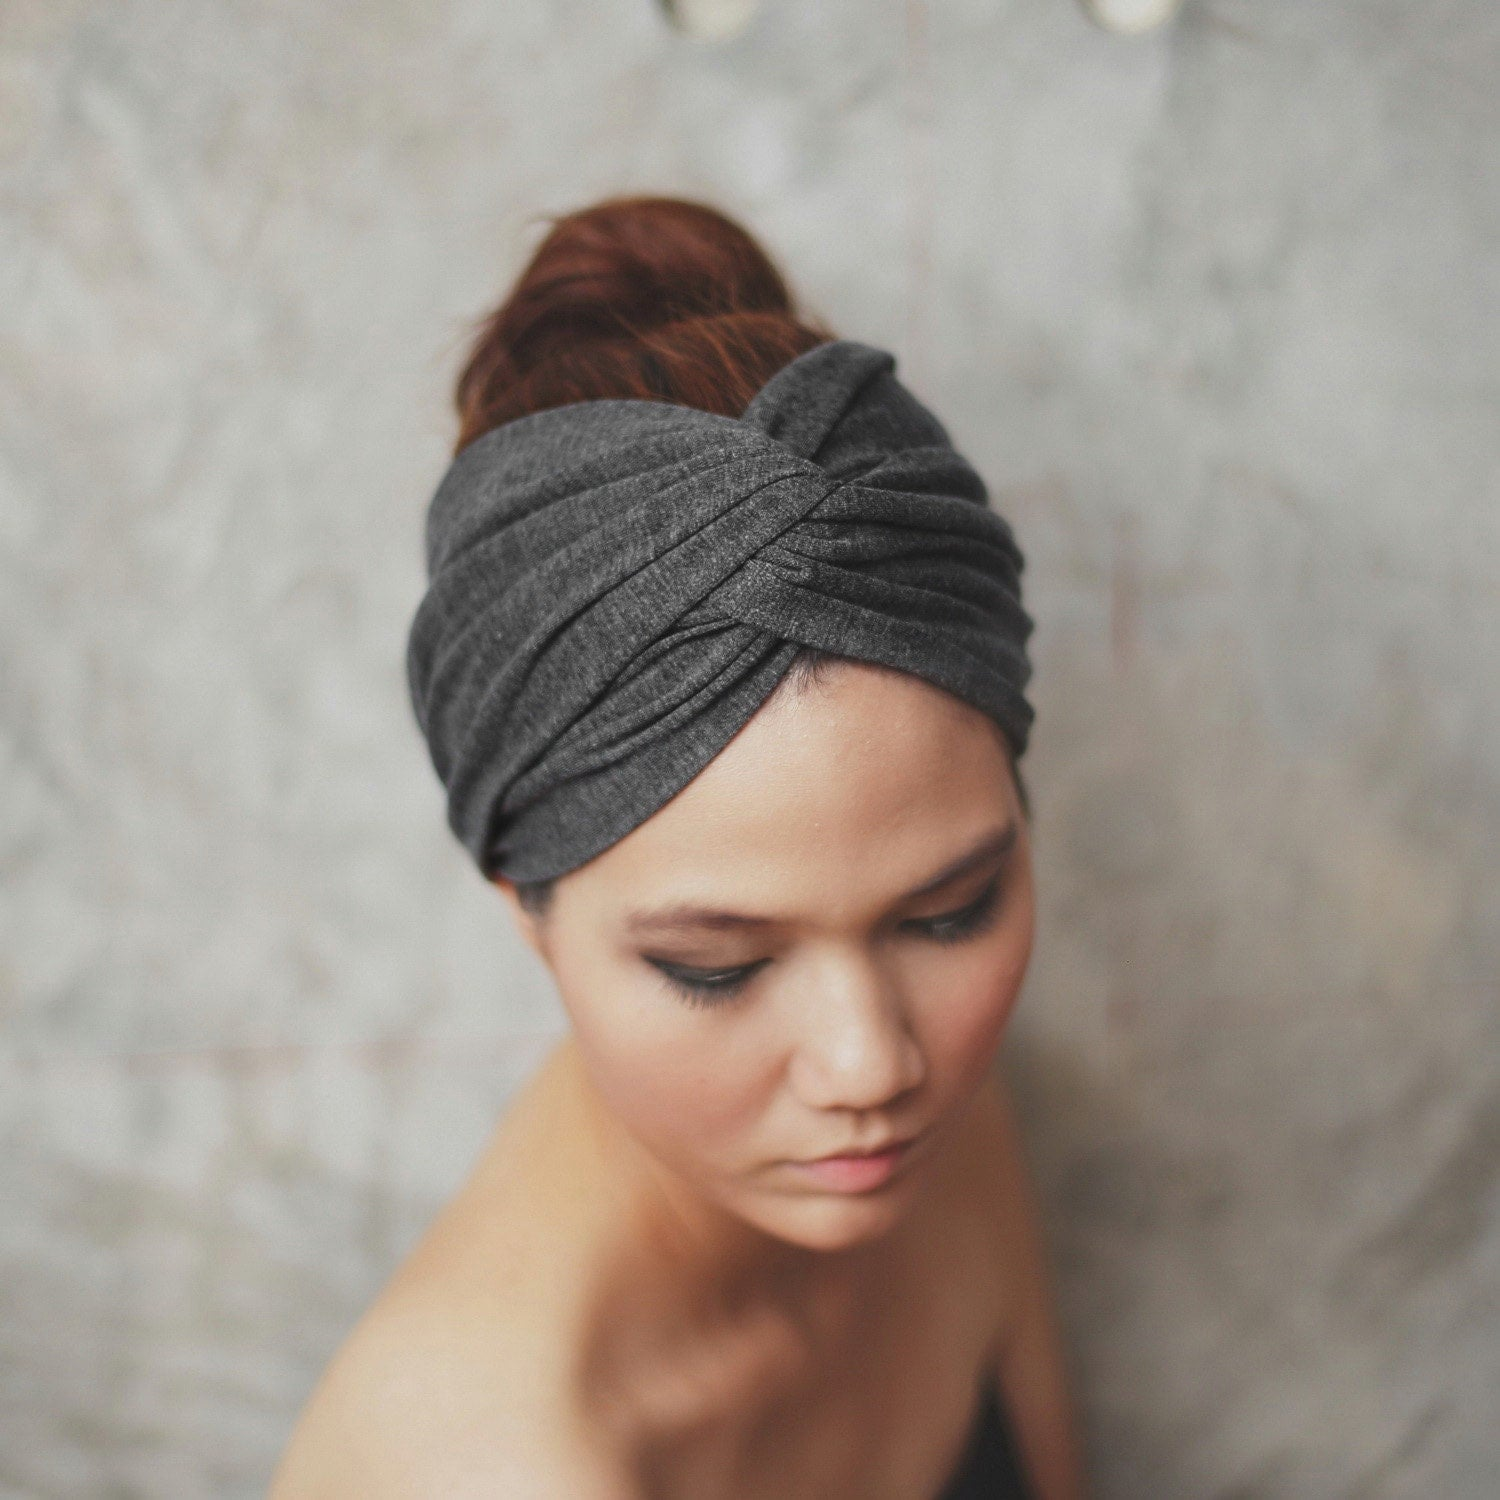 Make Turban Headband Turban Twist Headband